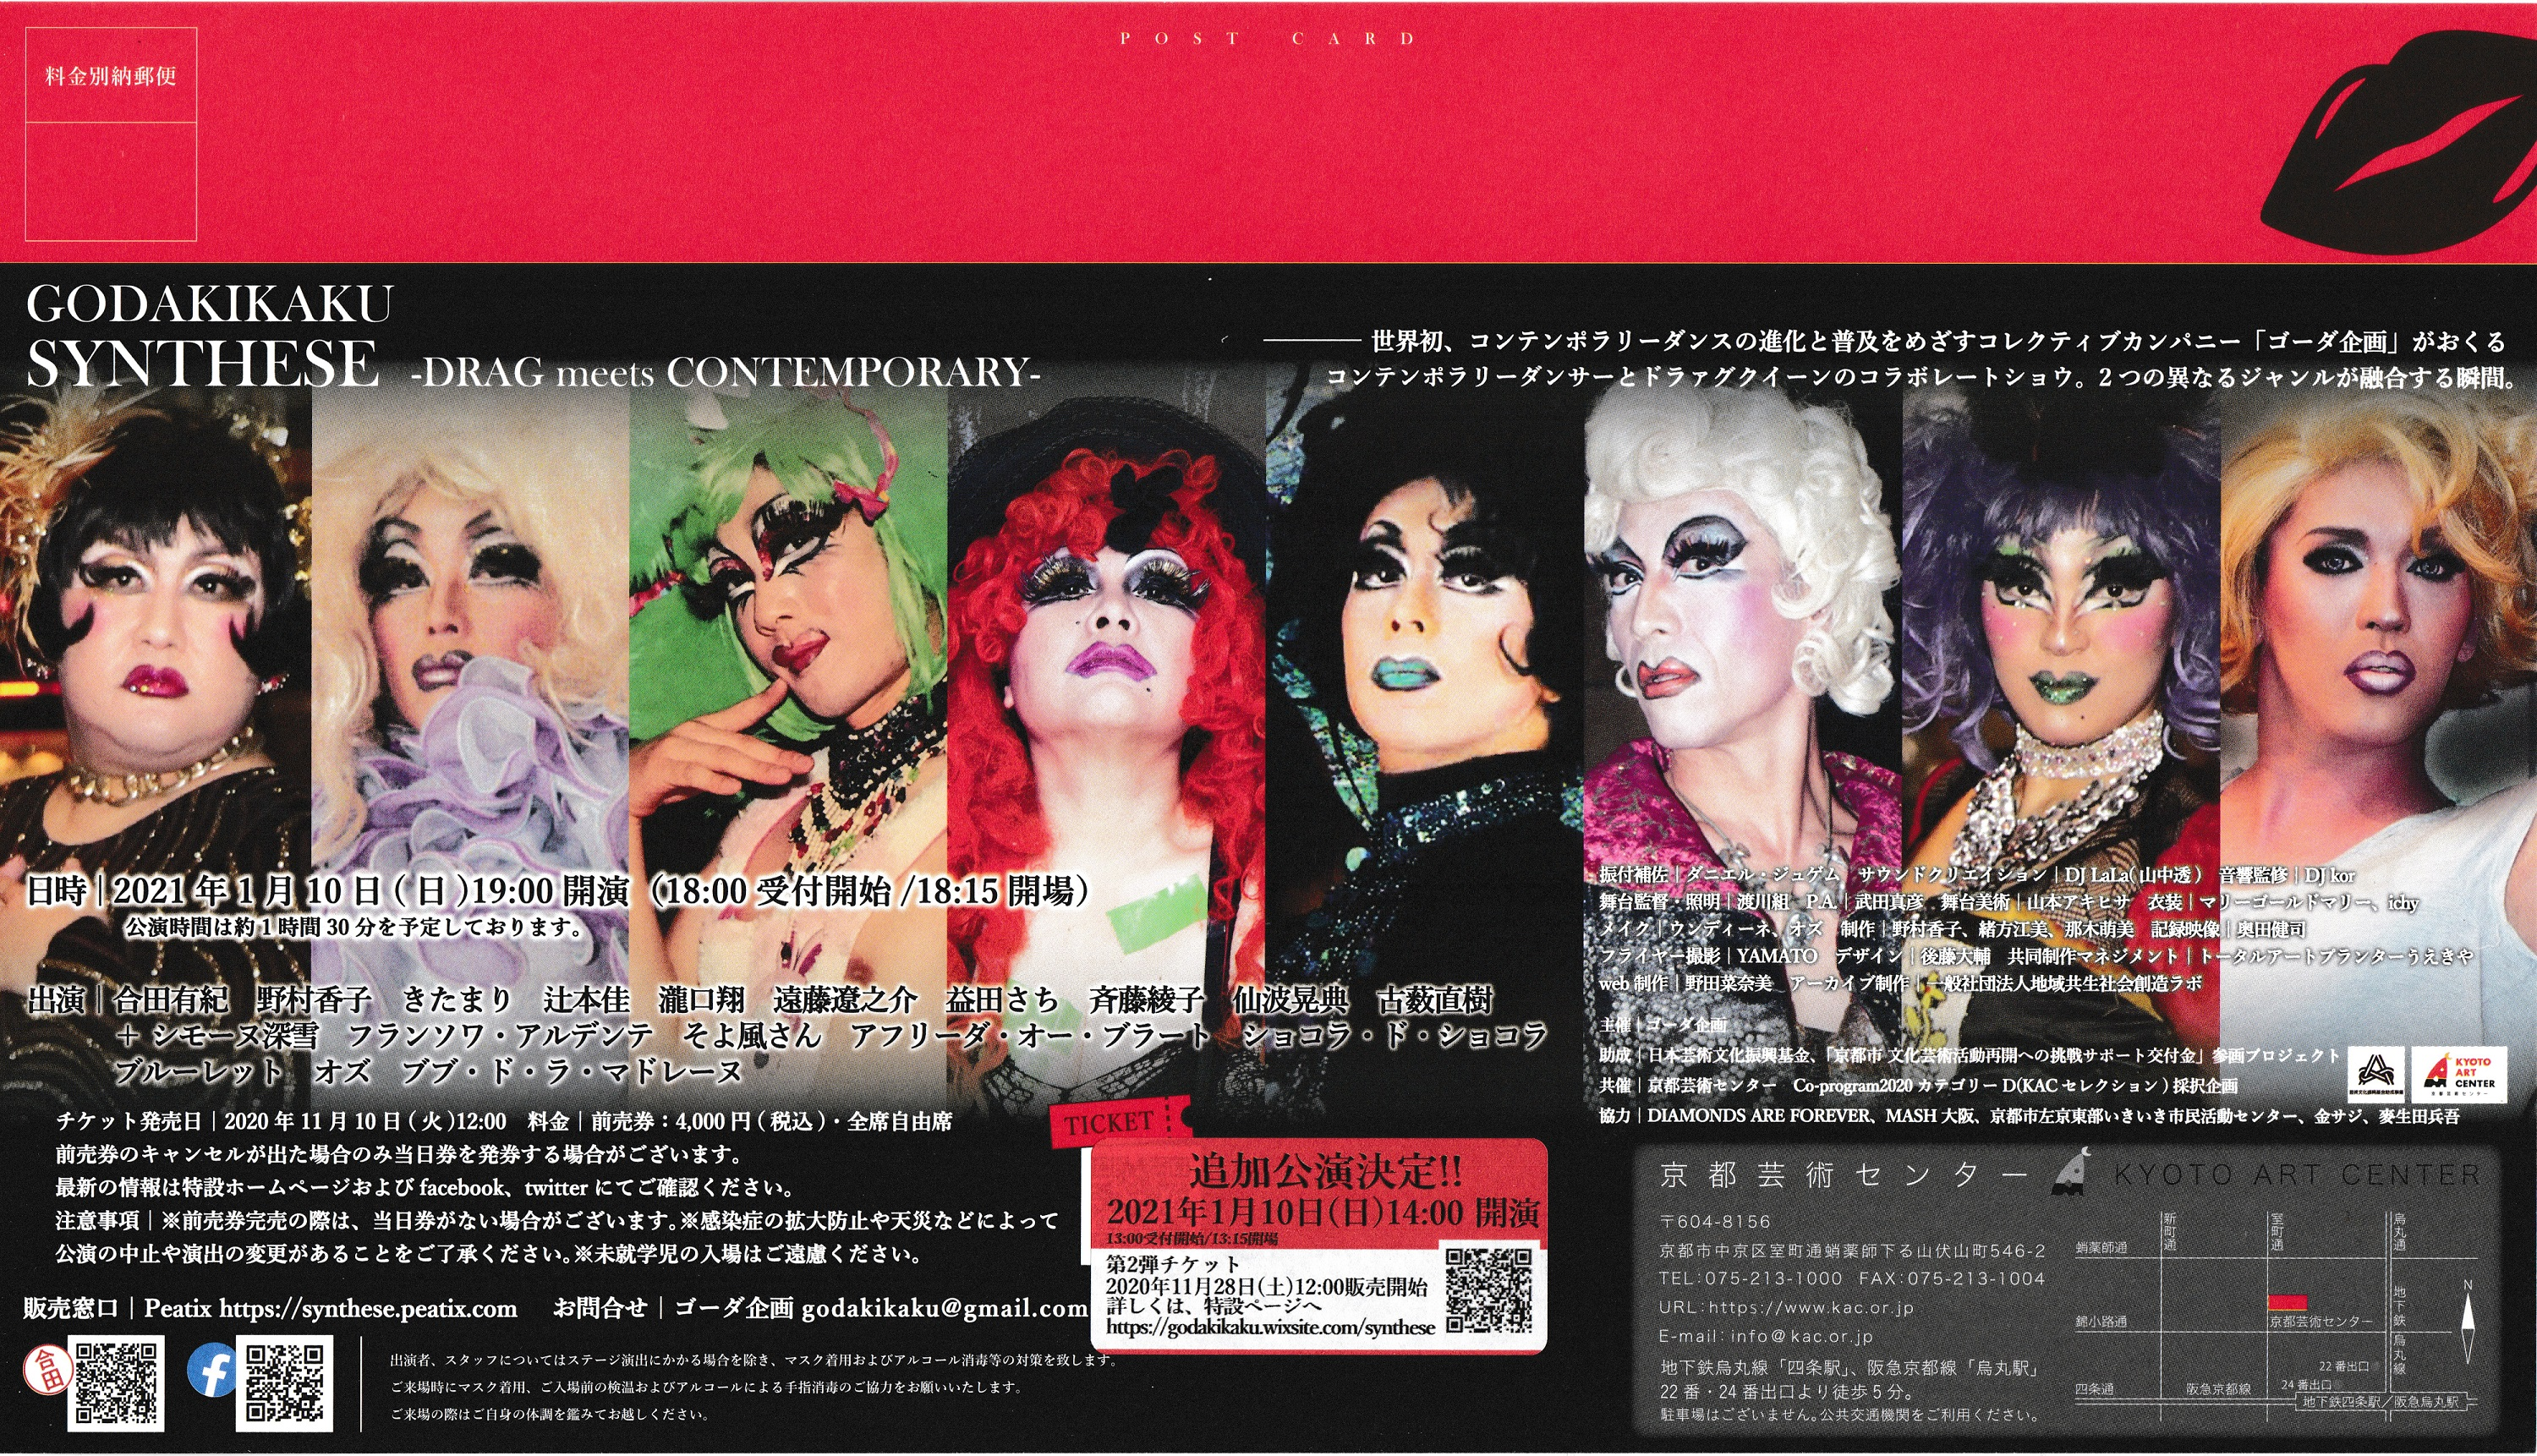 SYNTHESE -DRAG meets CONTEMPORARY-